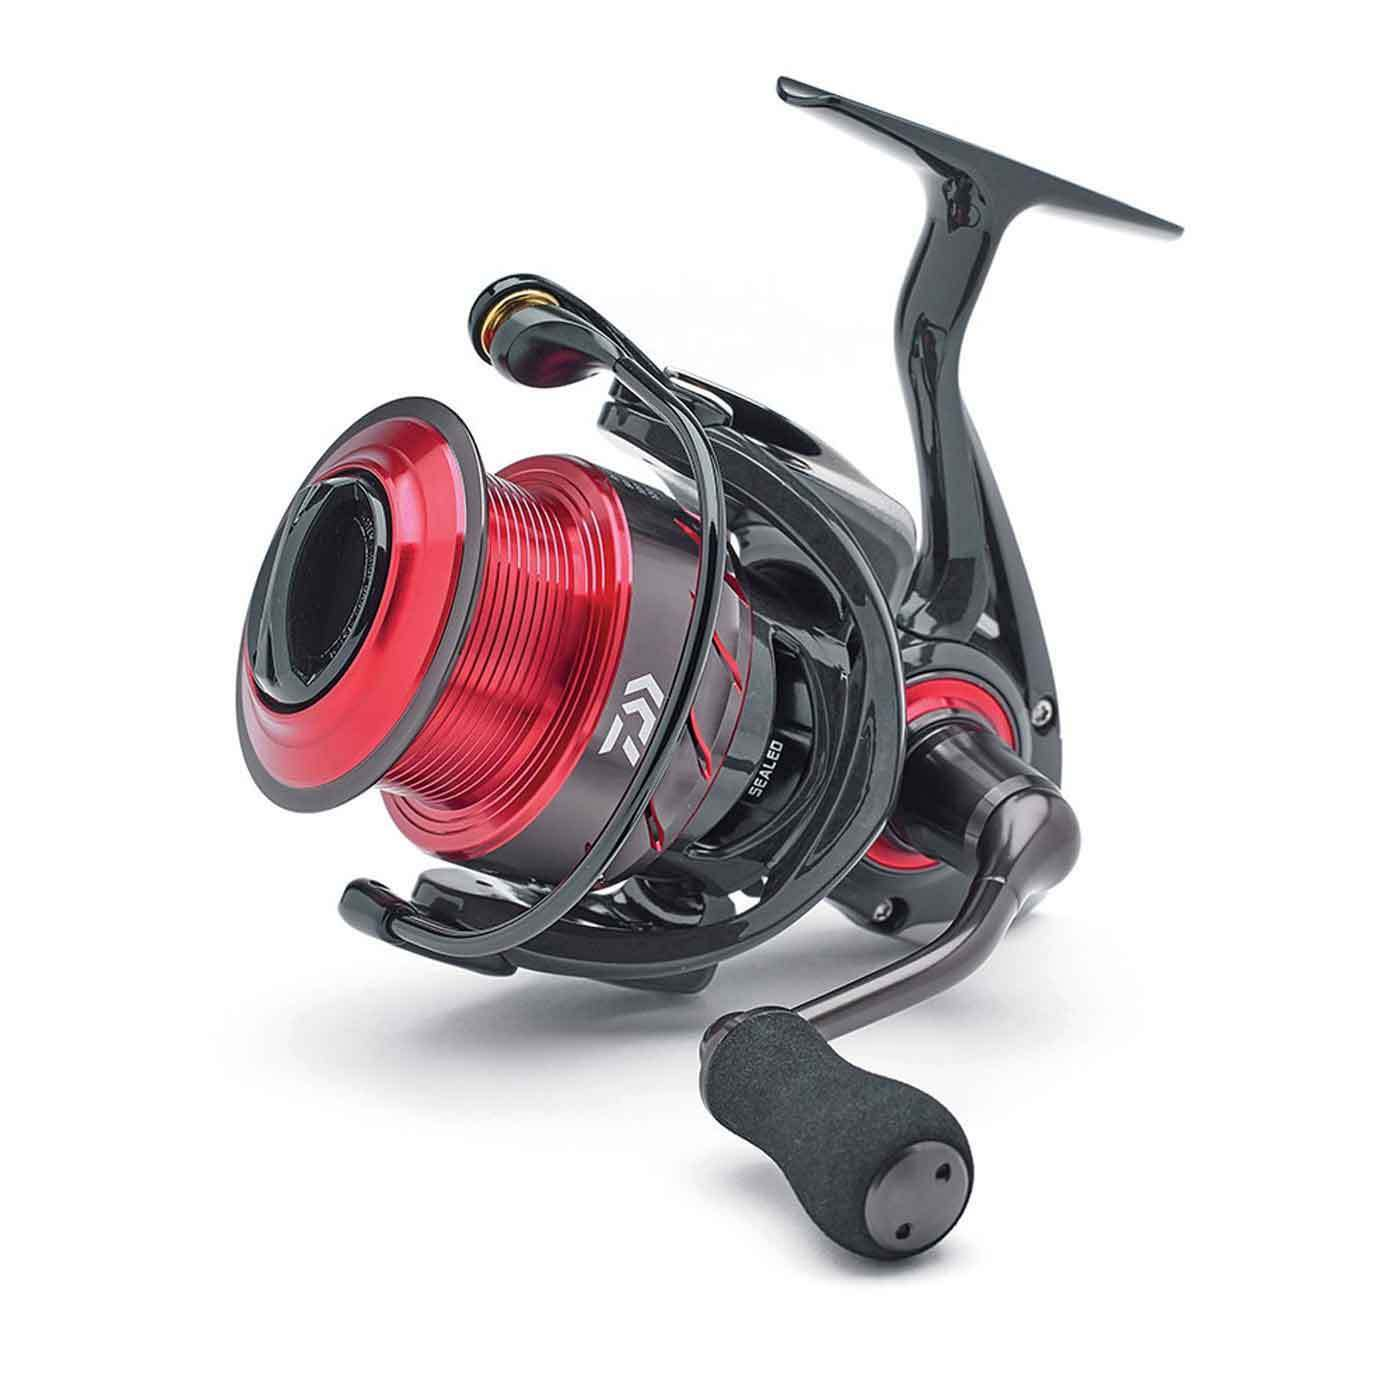 Daiwa 16 TDX 3010A Fixed Spool Reel Brand New - Free Delivery